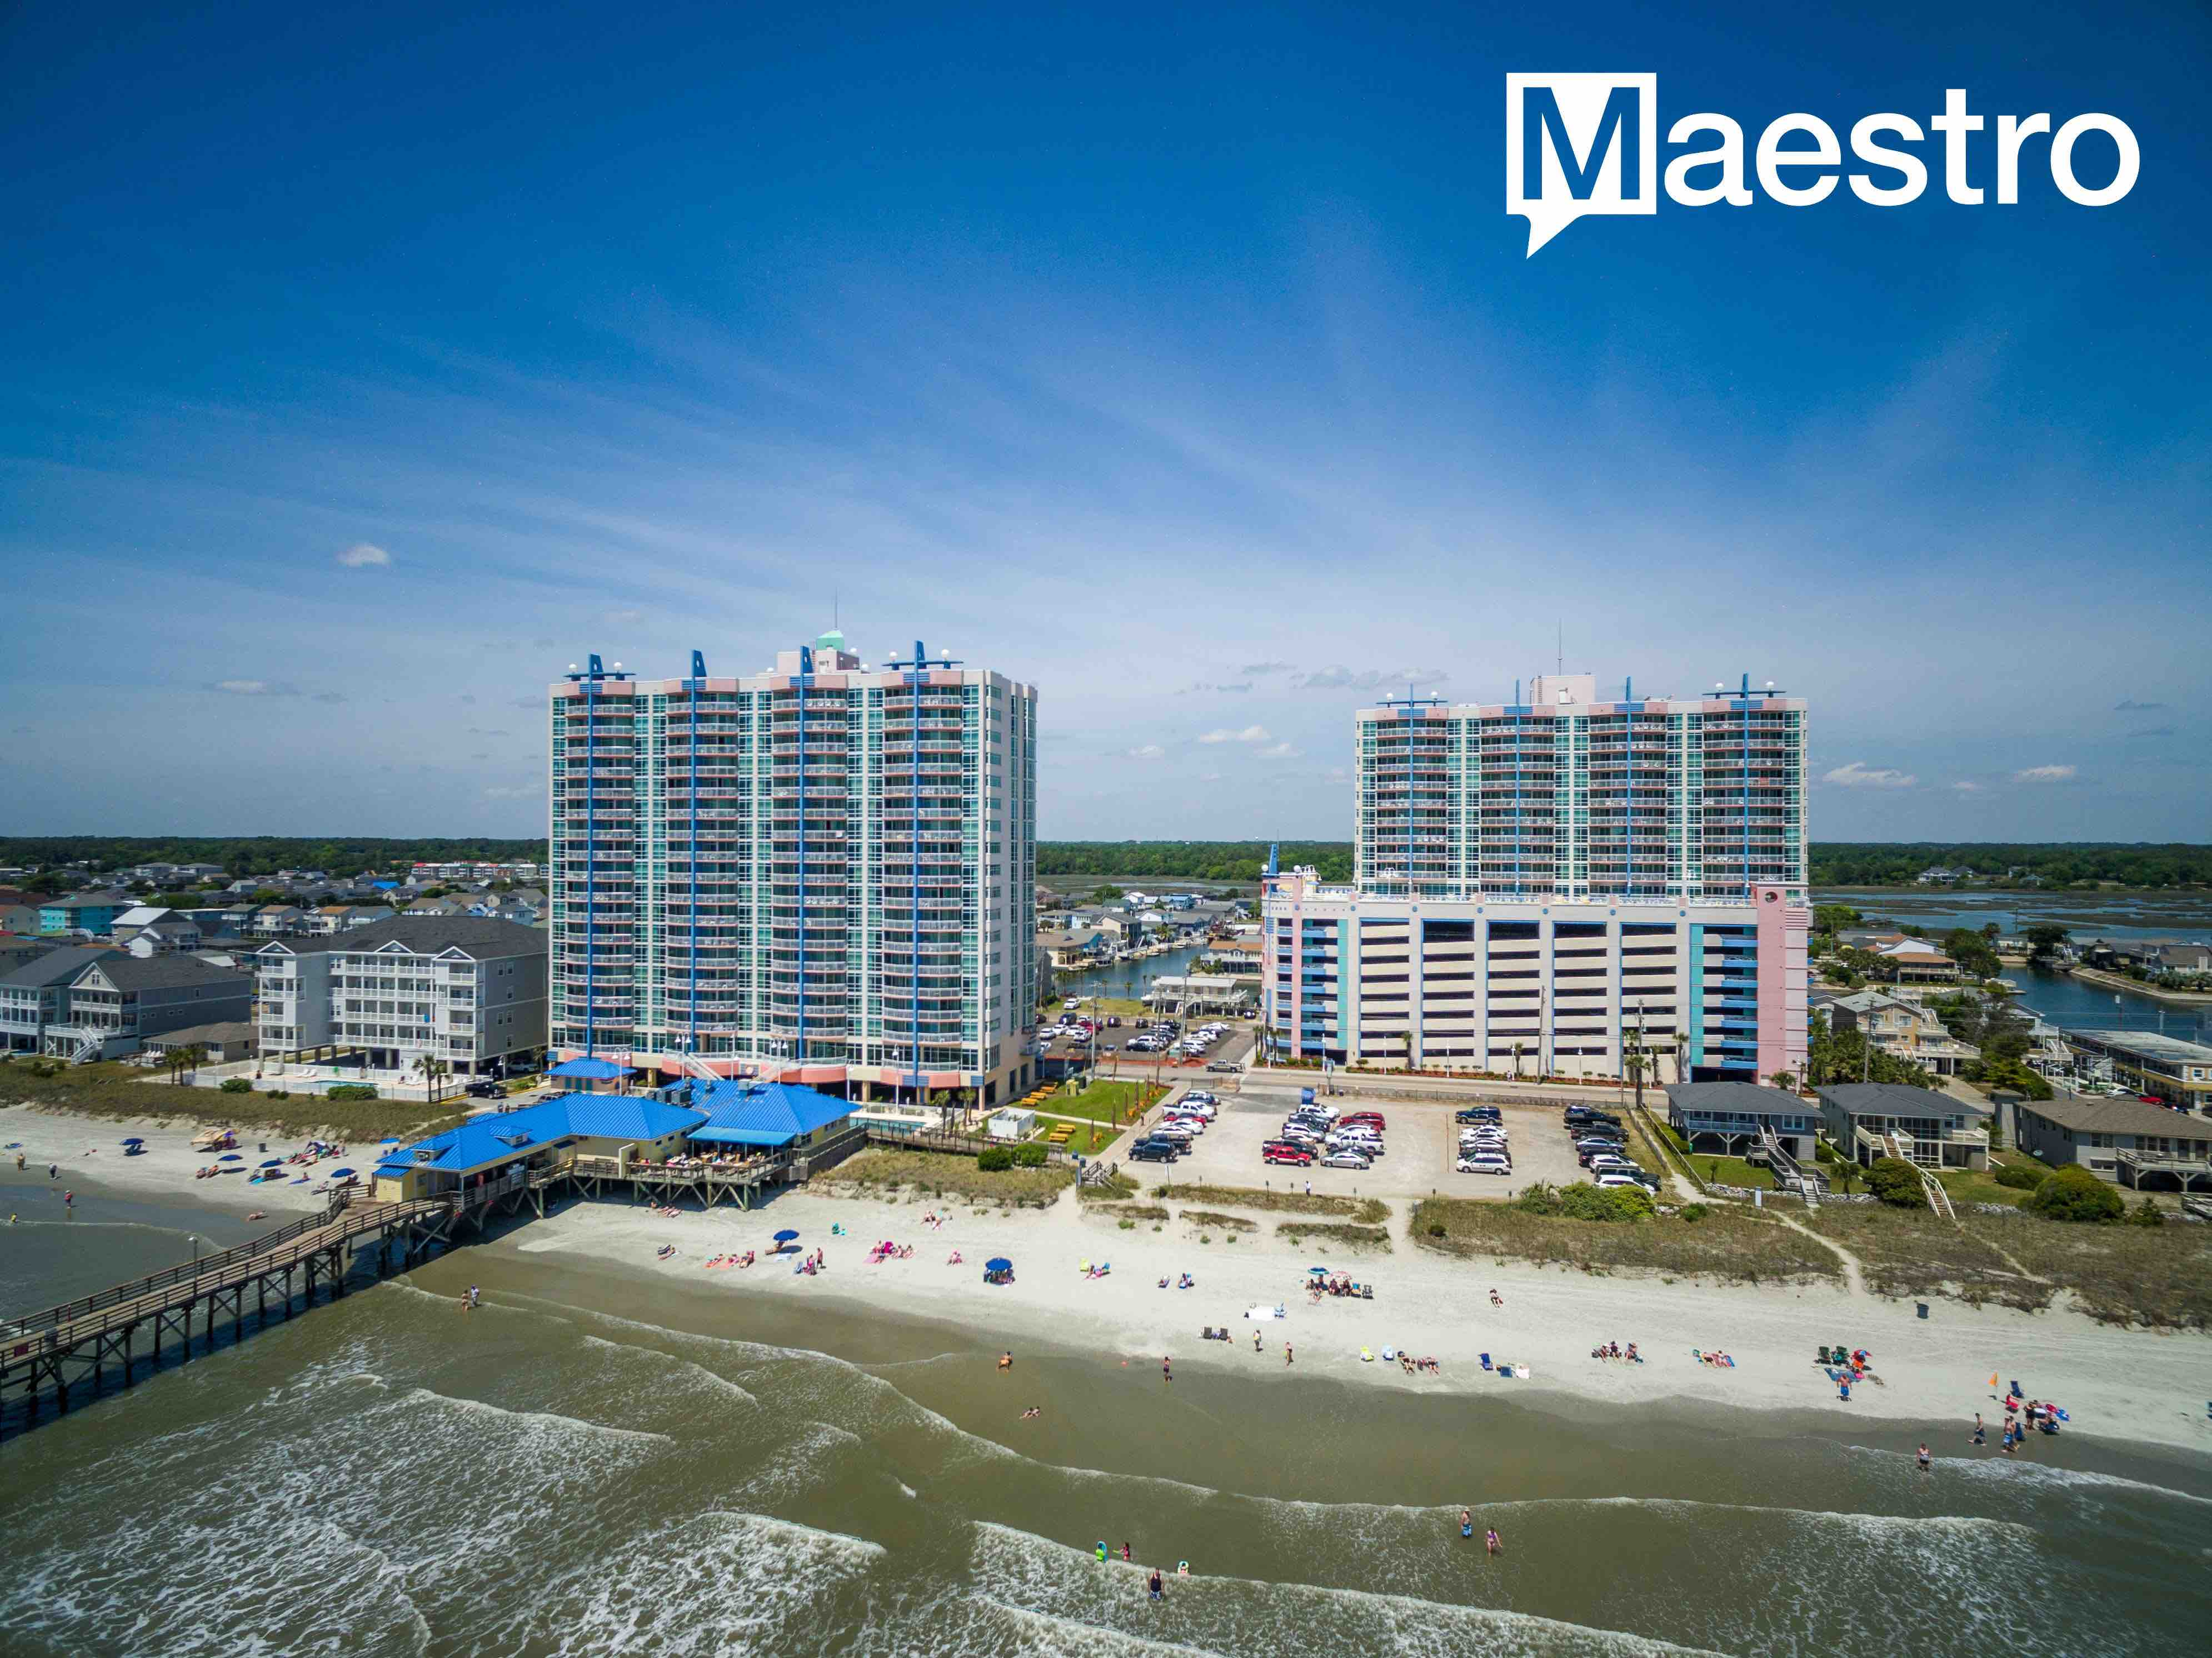 Myrtle Beach Seaside Resorts Optimizes Revenue and Loyalty at 7 Mixed-Use Condo Hotels With Centralized Maestro PMS Multi-Property Solution